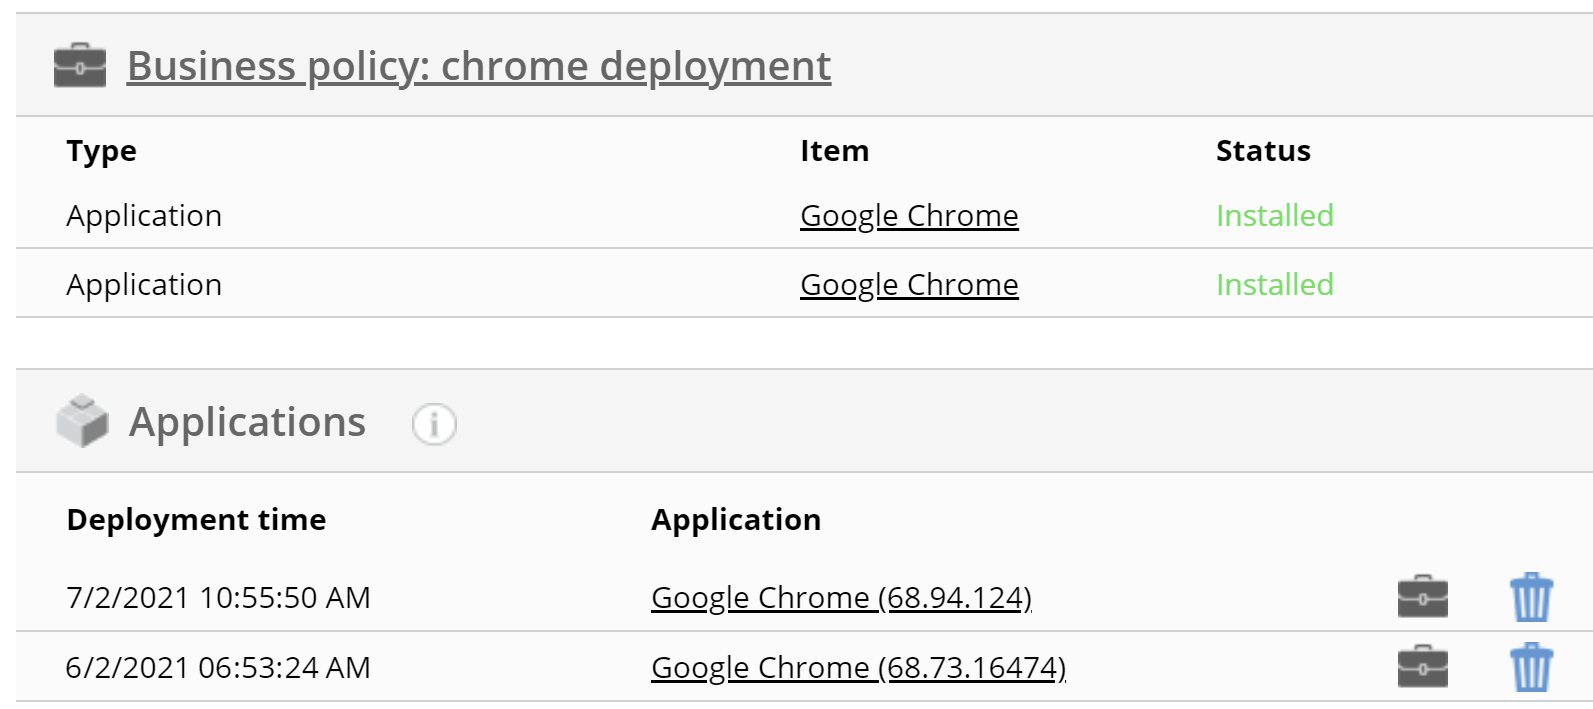 Miradore UI shows duplicate information about app deployments after updating MSI apps.